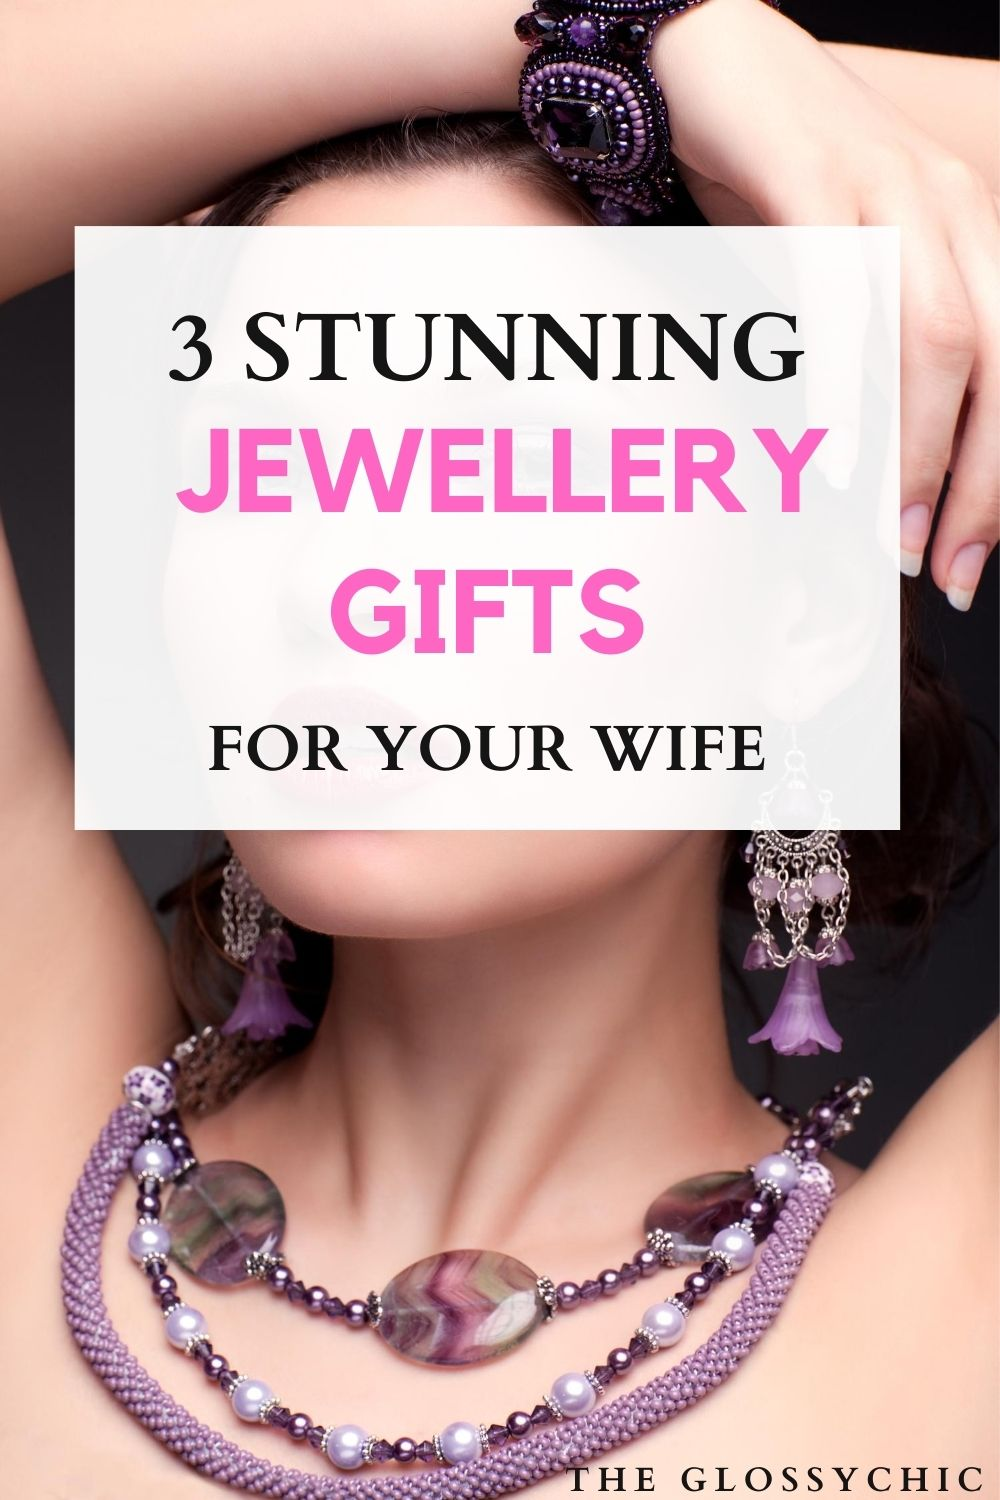 3 stunning jewellery gifts for your wife